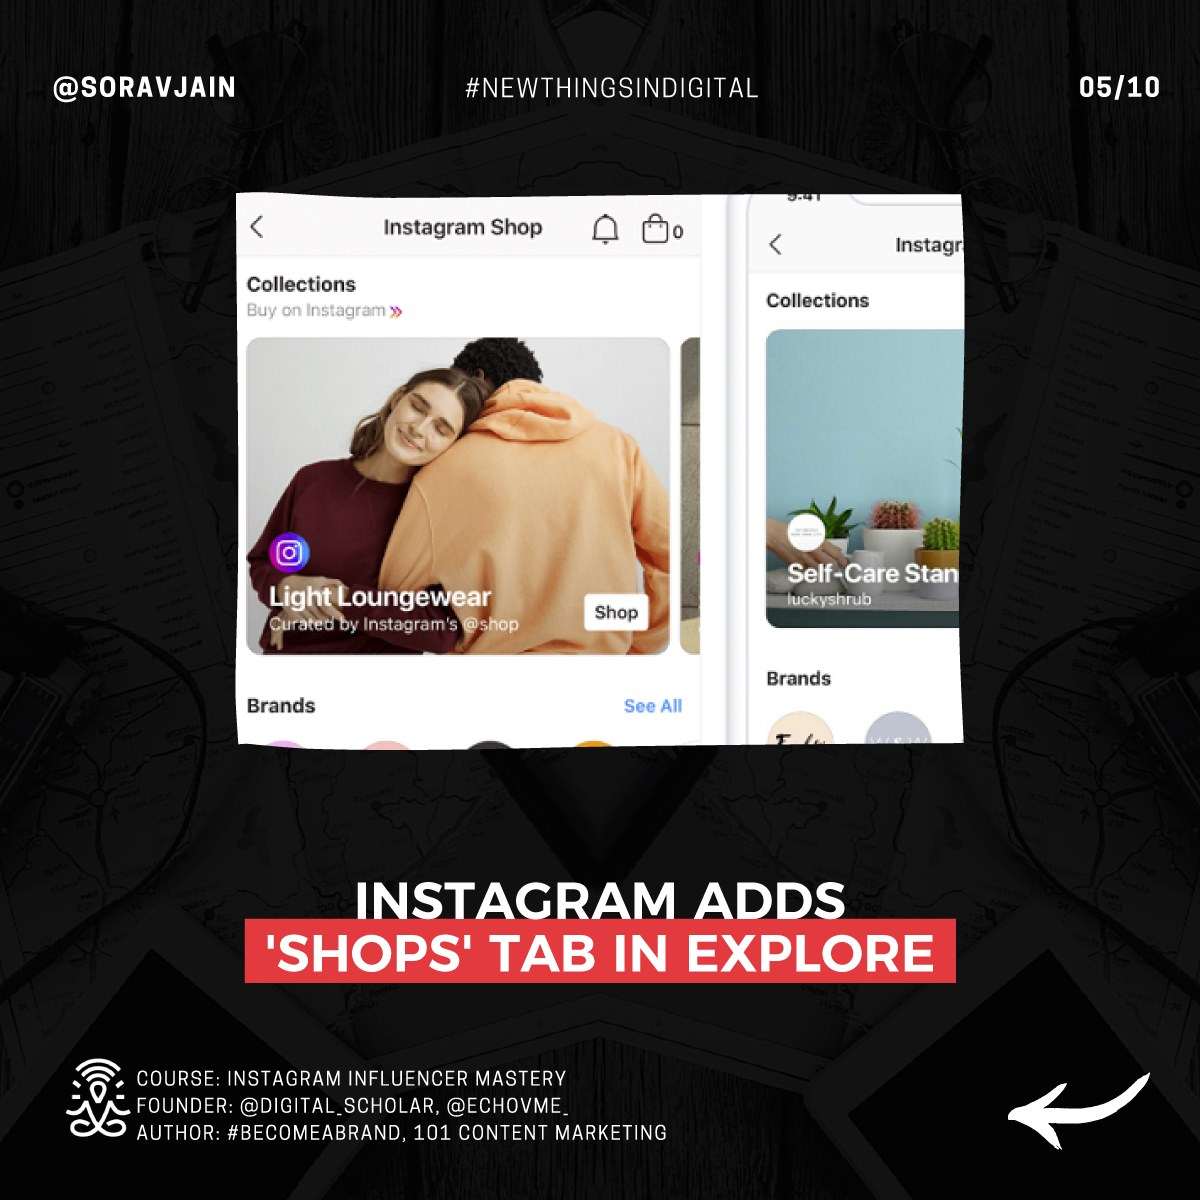 Instagram adds 'Shops' tab in Explore